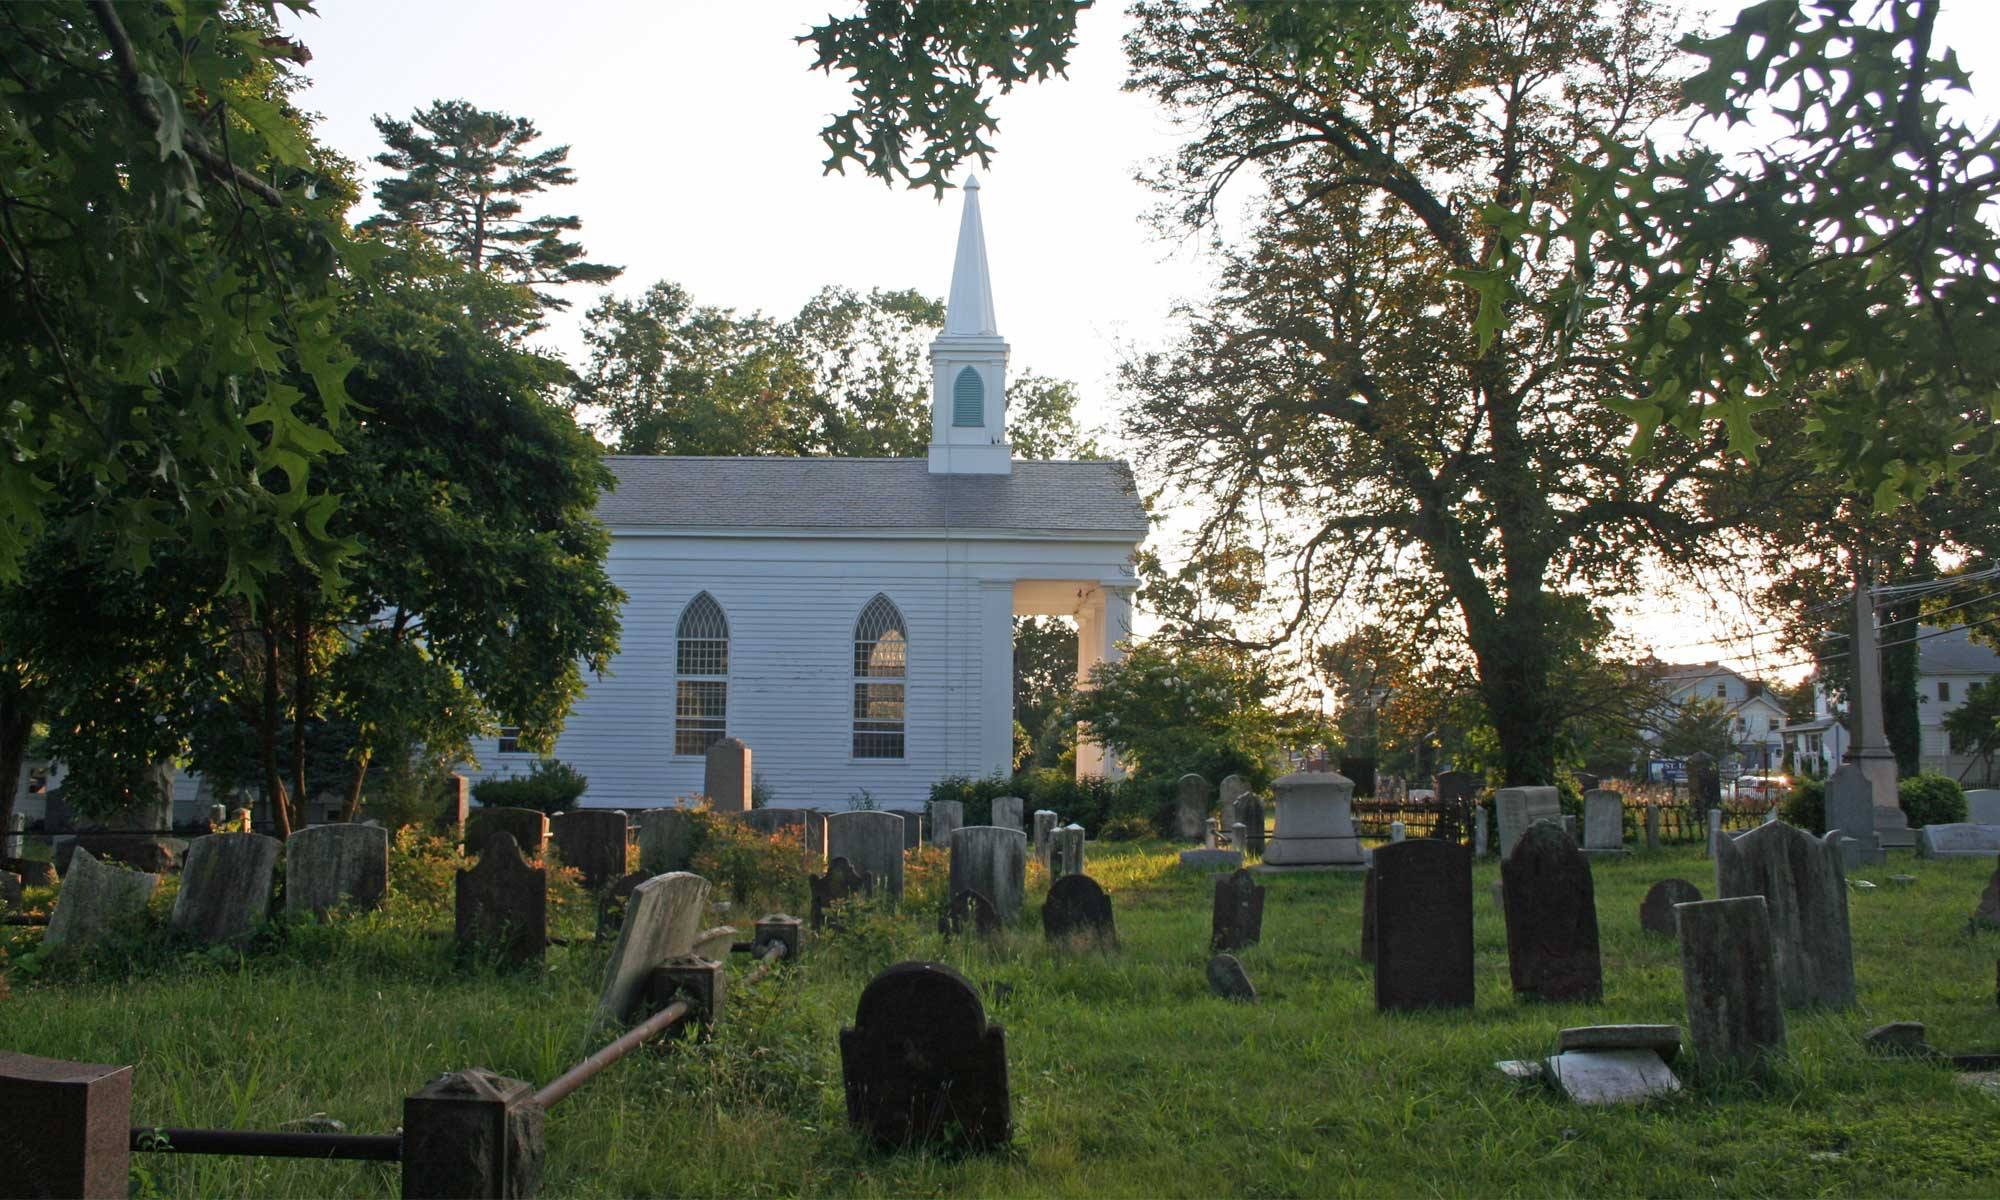 Piscatawaytown Burial Ground and the witch of Edison